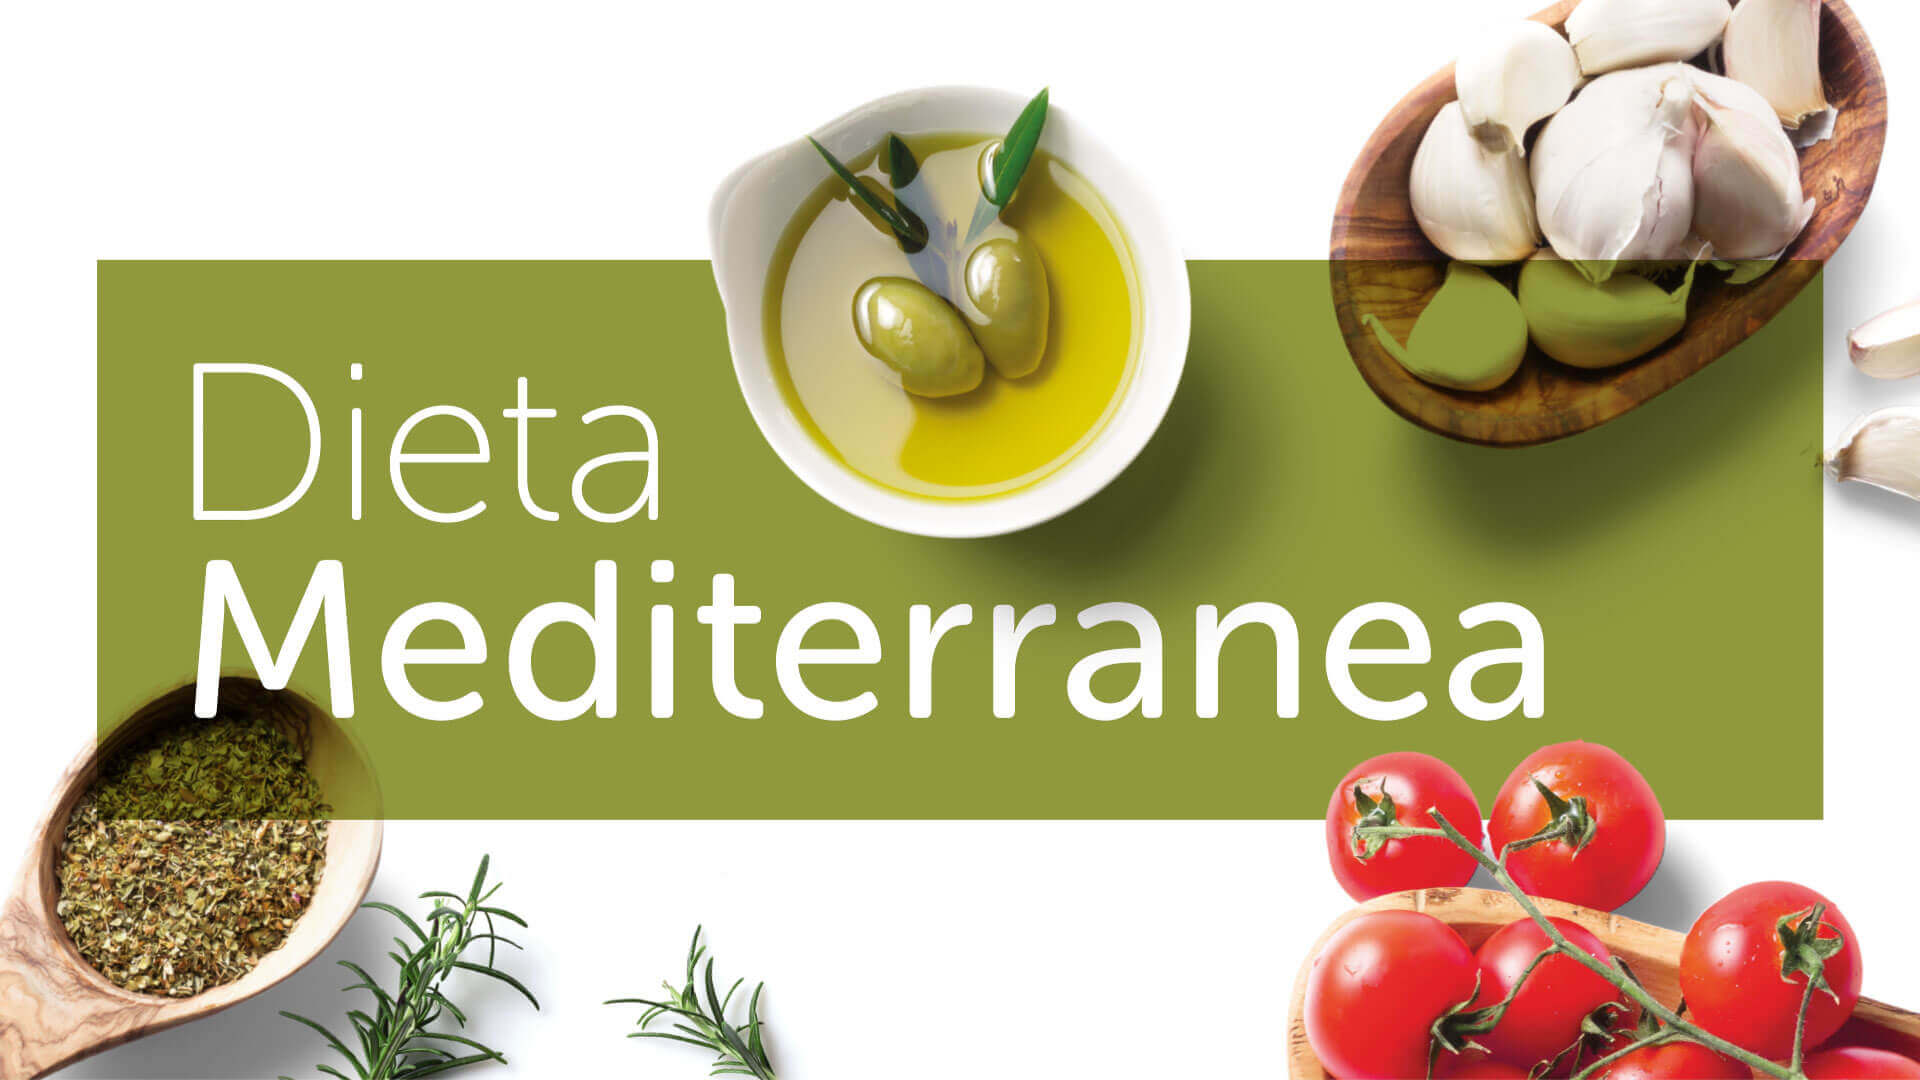 Dieta Mediterranea Italianwaypet.it